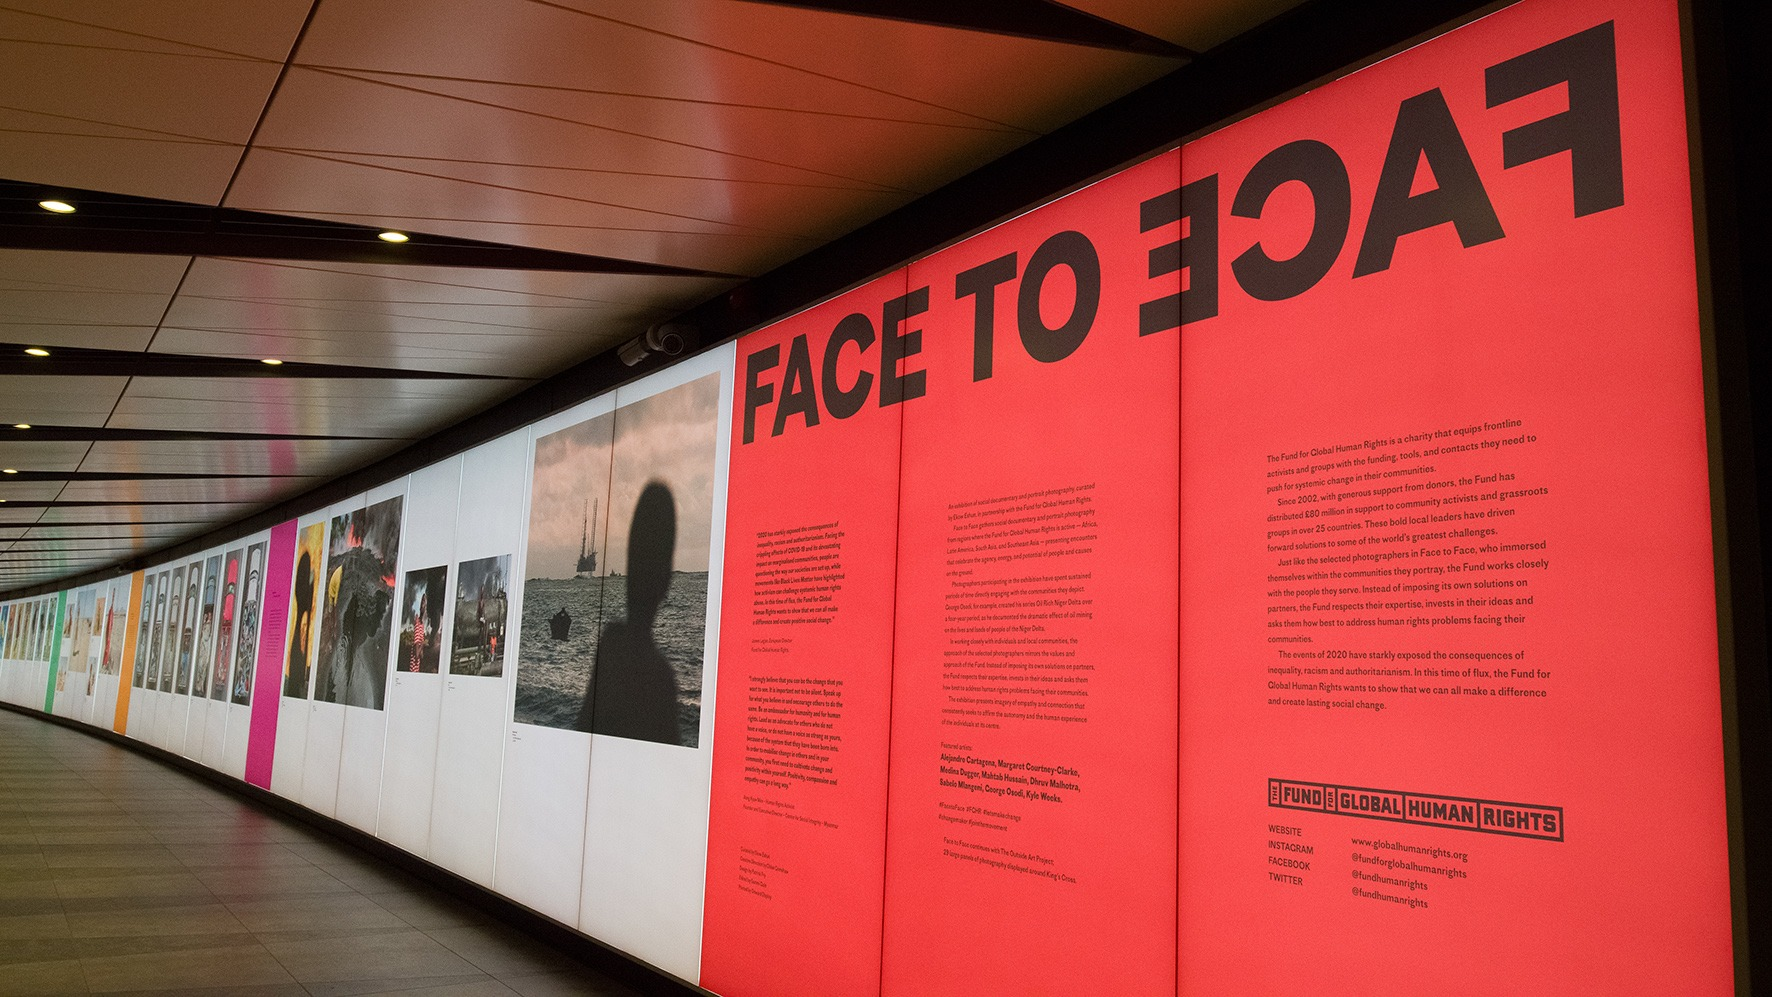 Project image for Face to Face at the King's Cross Tunnel